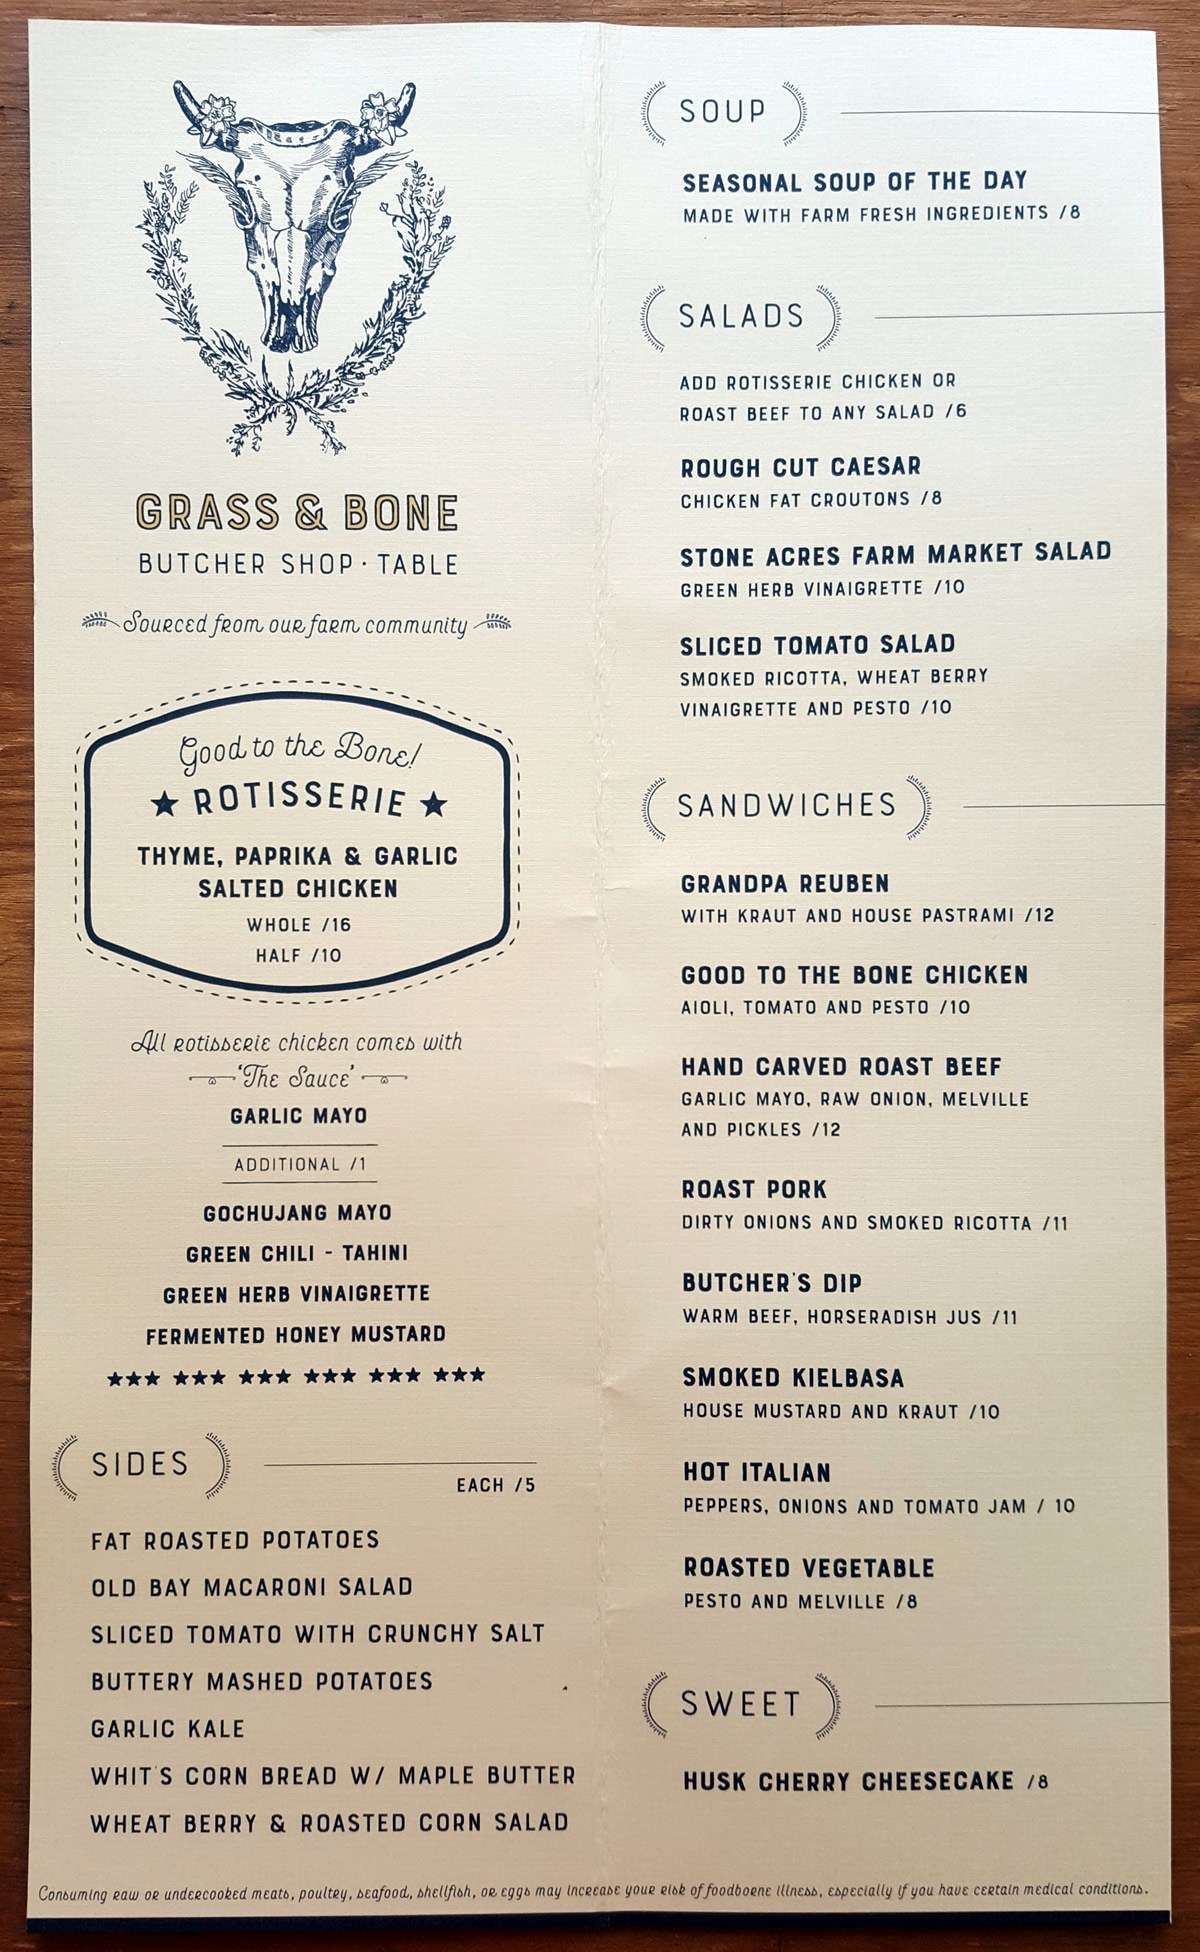 Grass and Bone restaurant menu